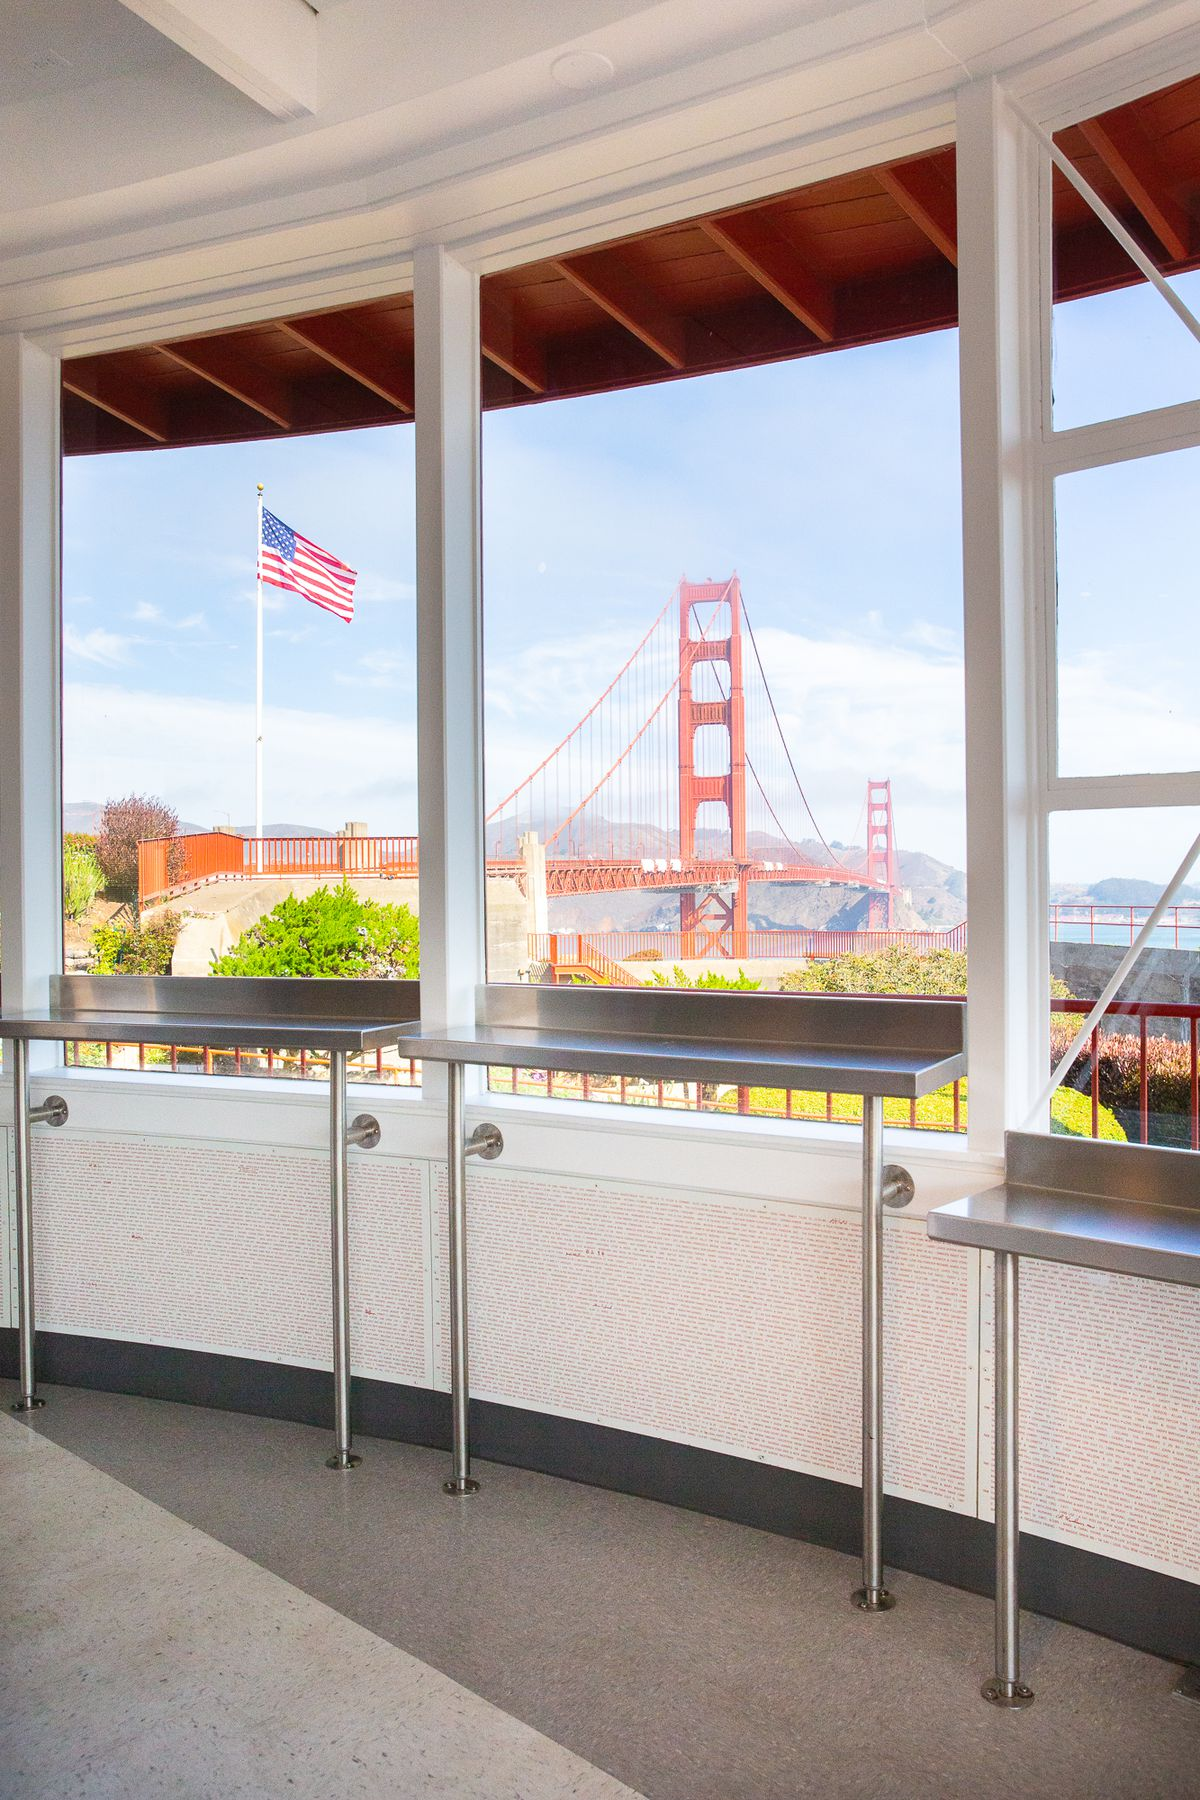 A view of the Golden Gate Bridge from inside Equator Coffees at Round House Cafe